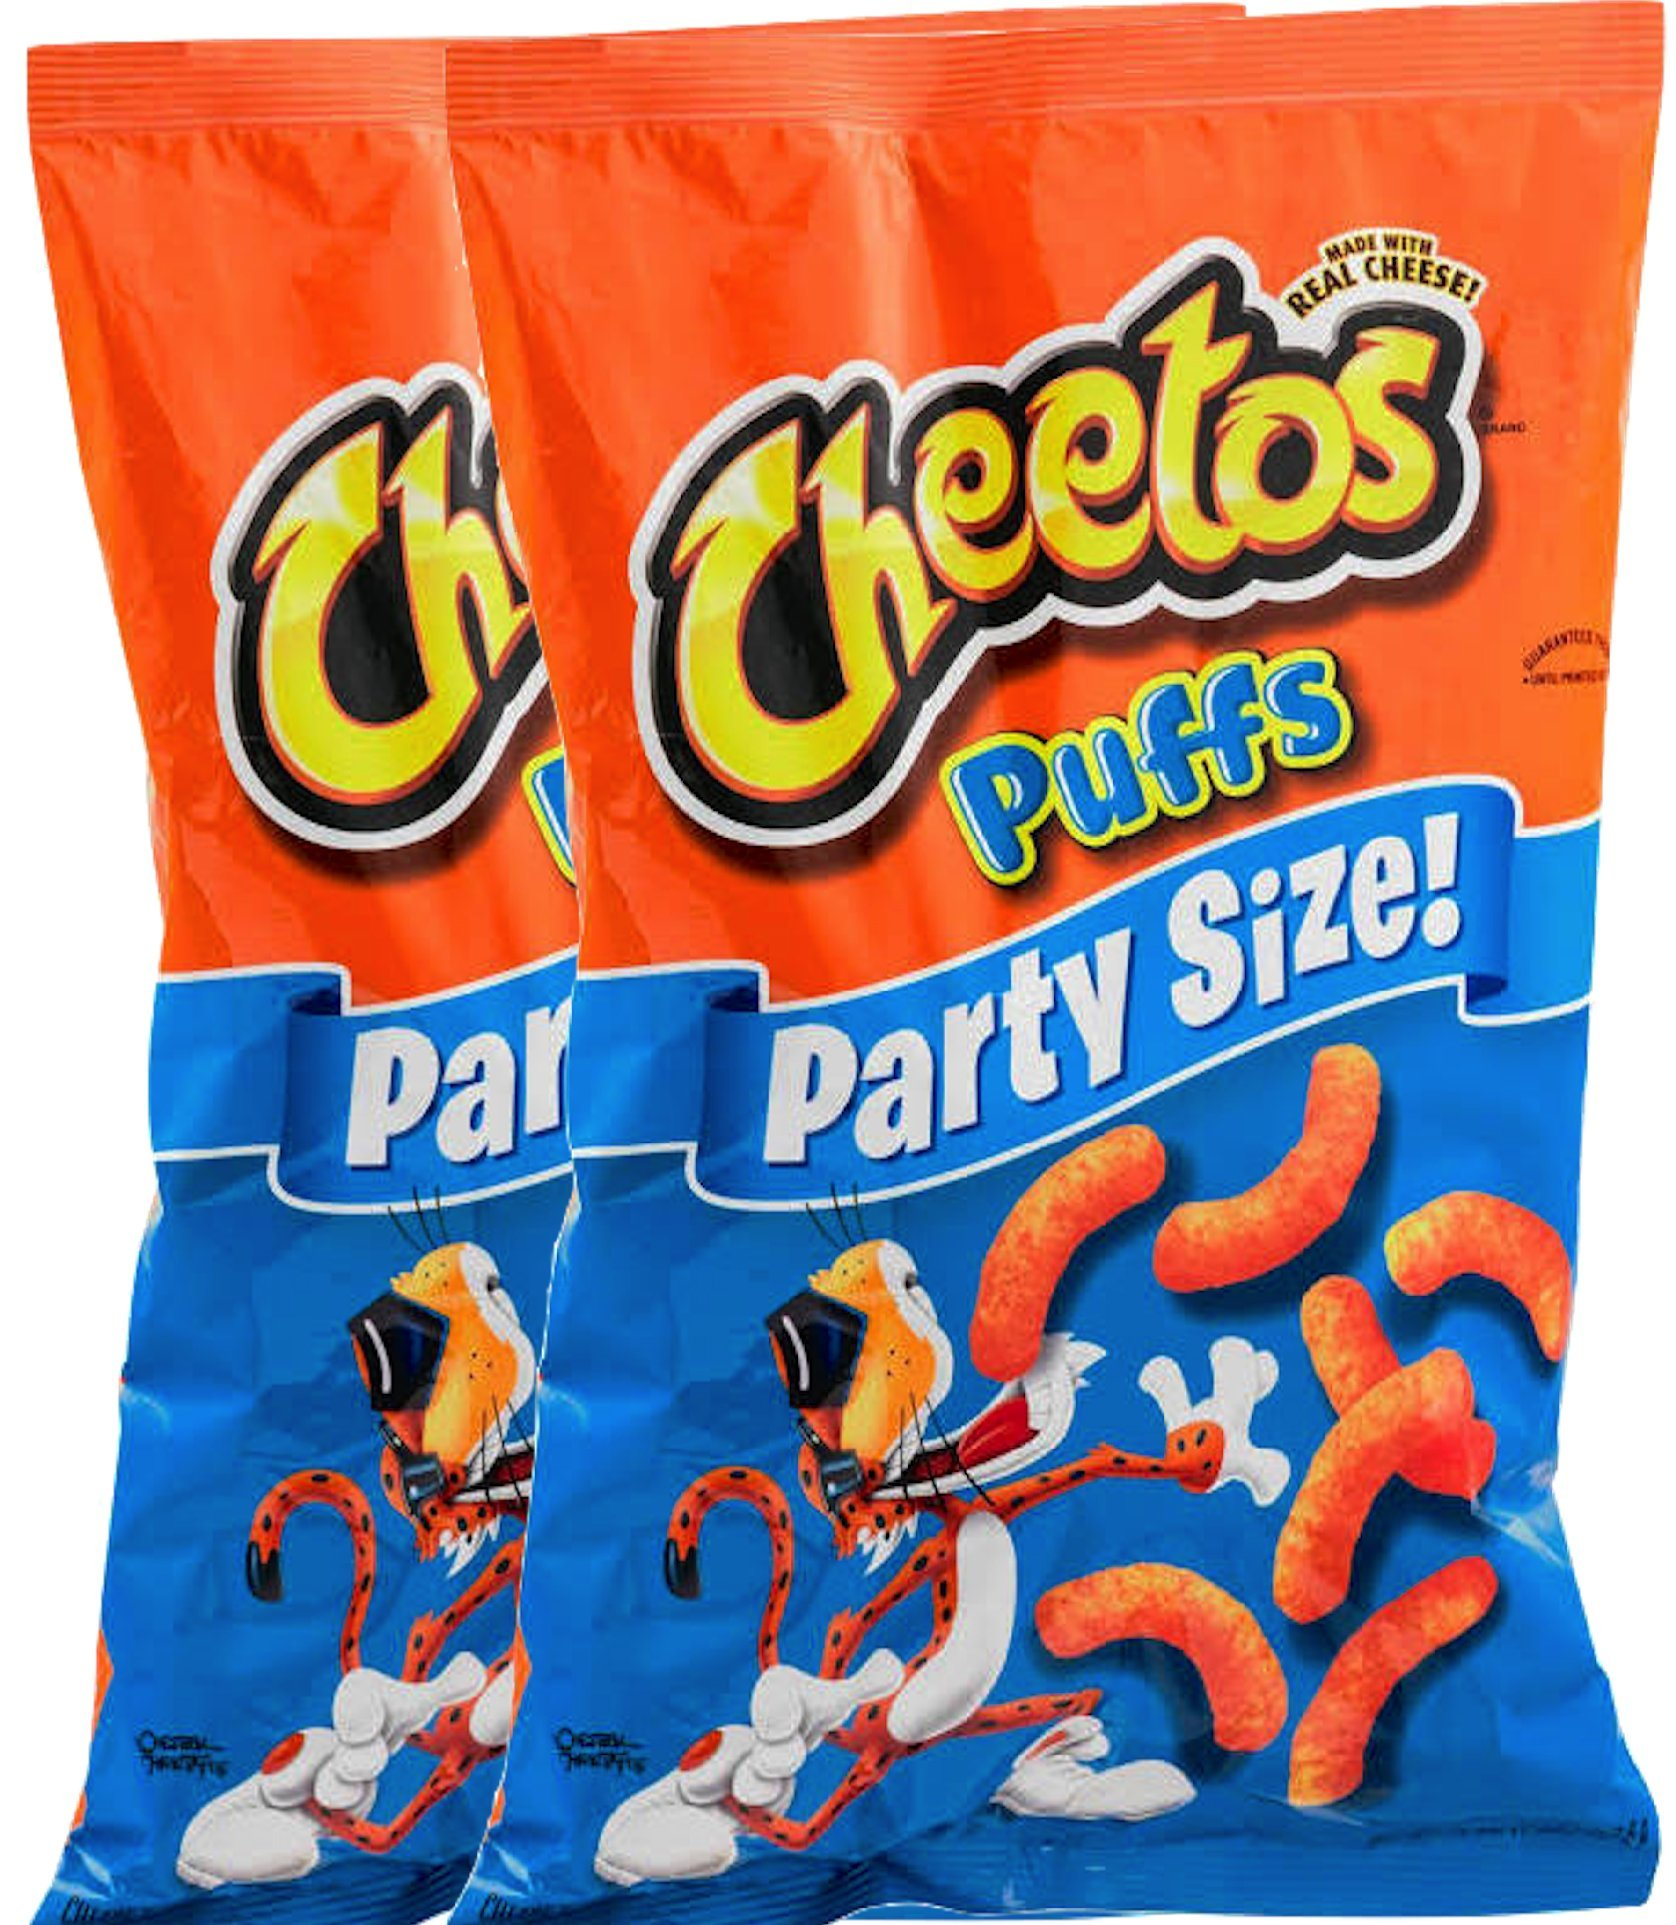 Cheetos Cheese Puffs Party Size 16 oz Bag (2)